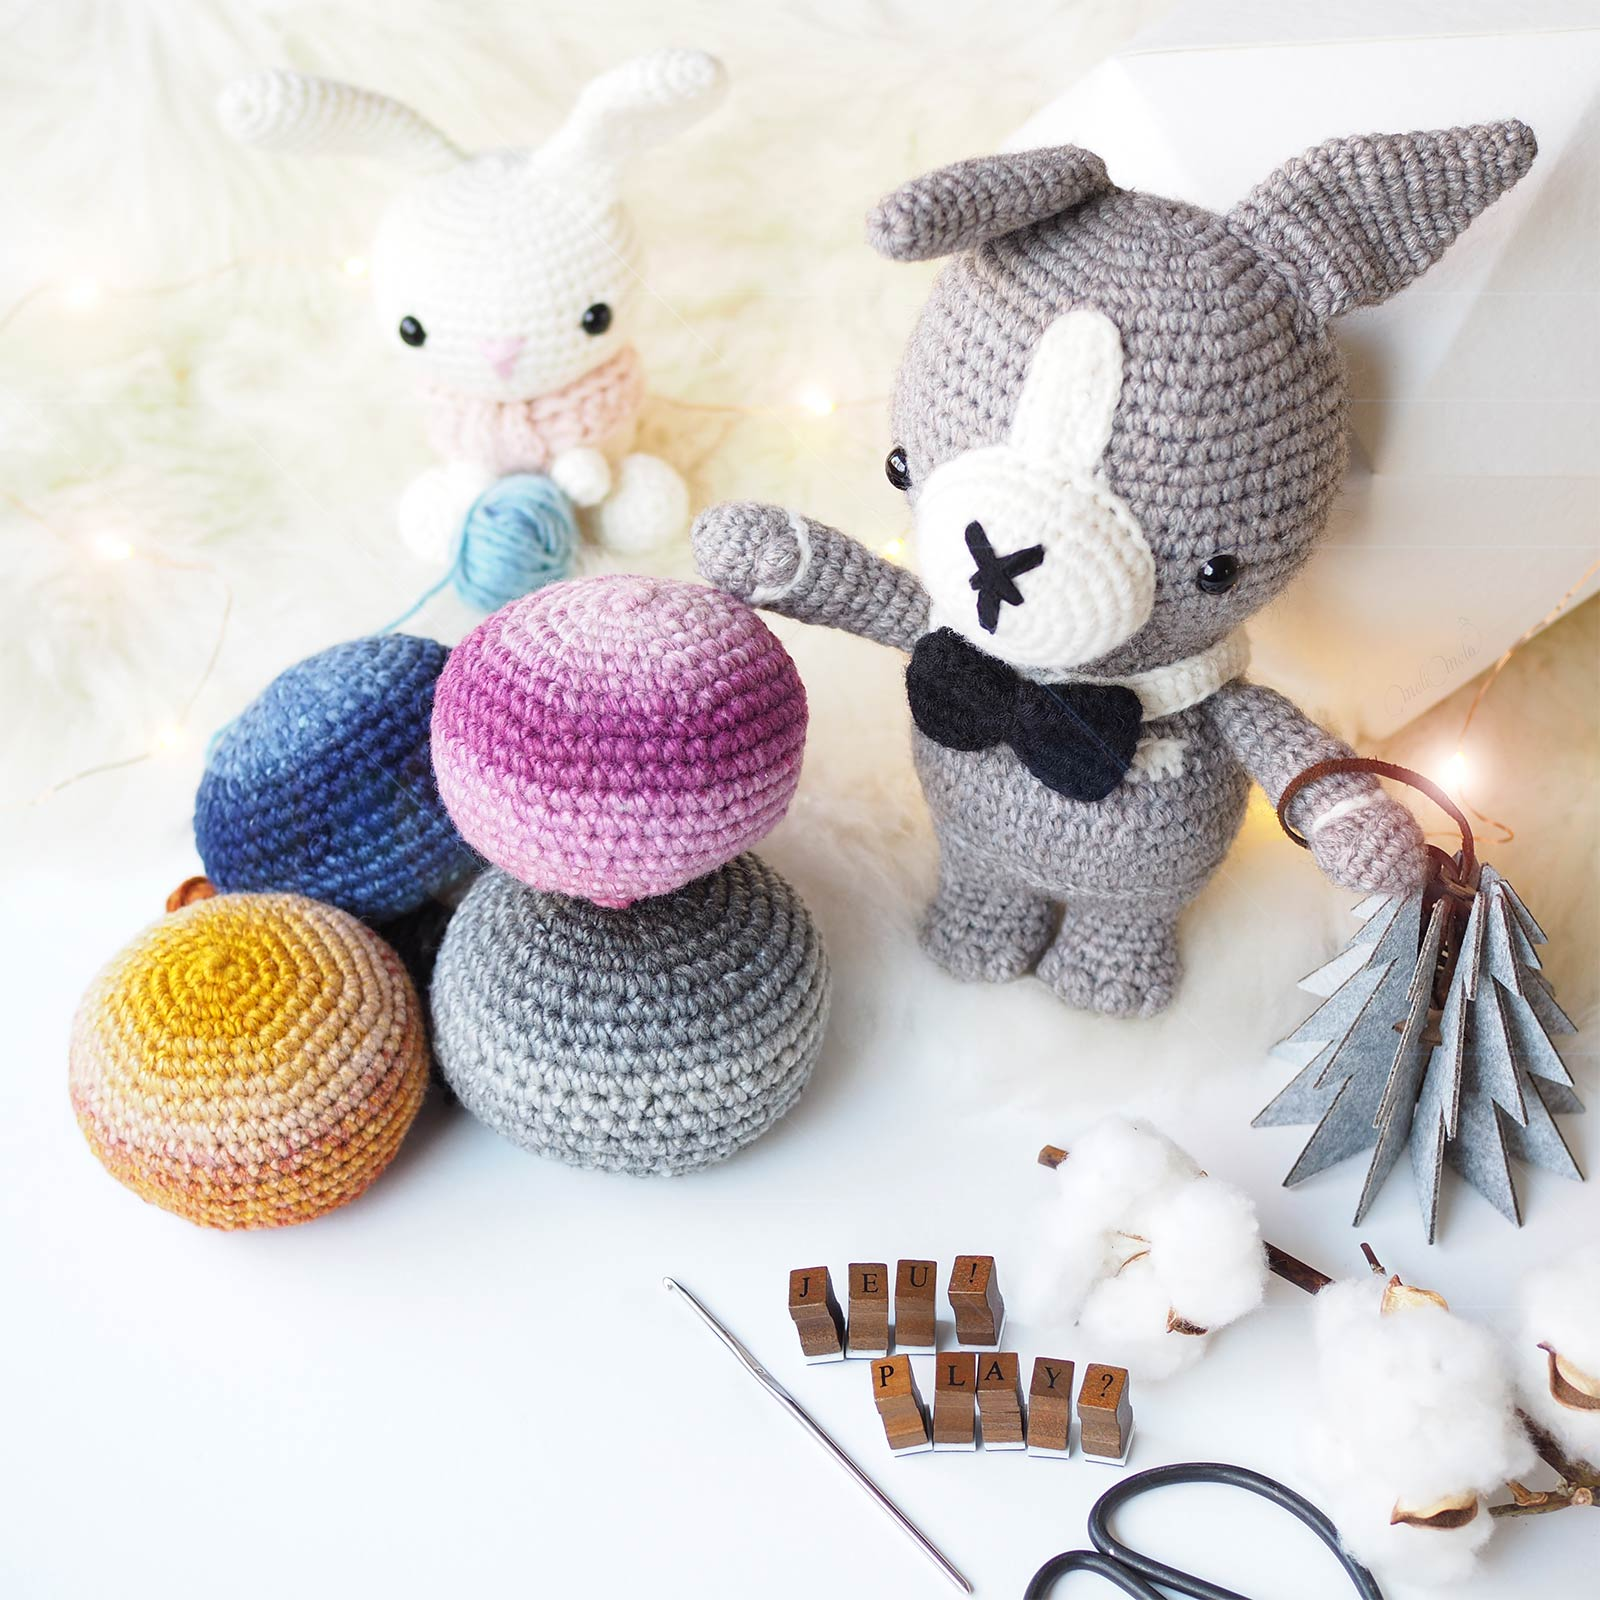 giveaway concours crochet amigurumis lapin spring bunny chien dog bentley laboutiquedemelimelo